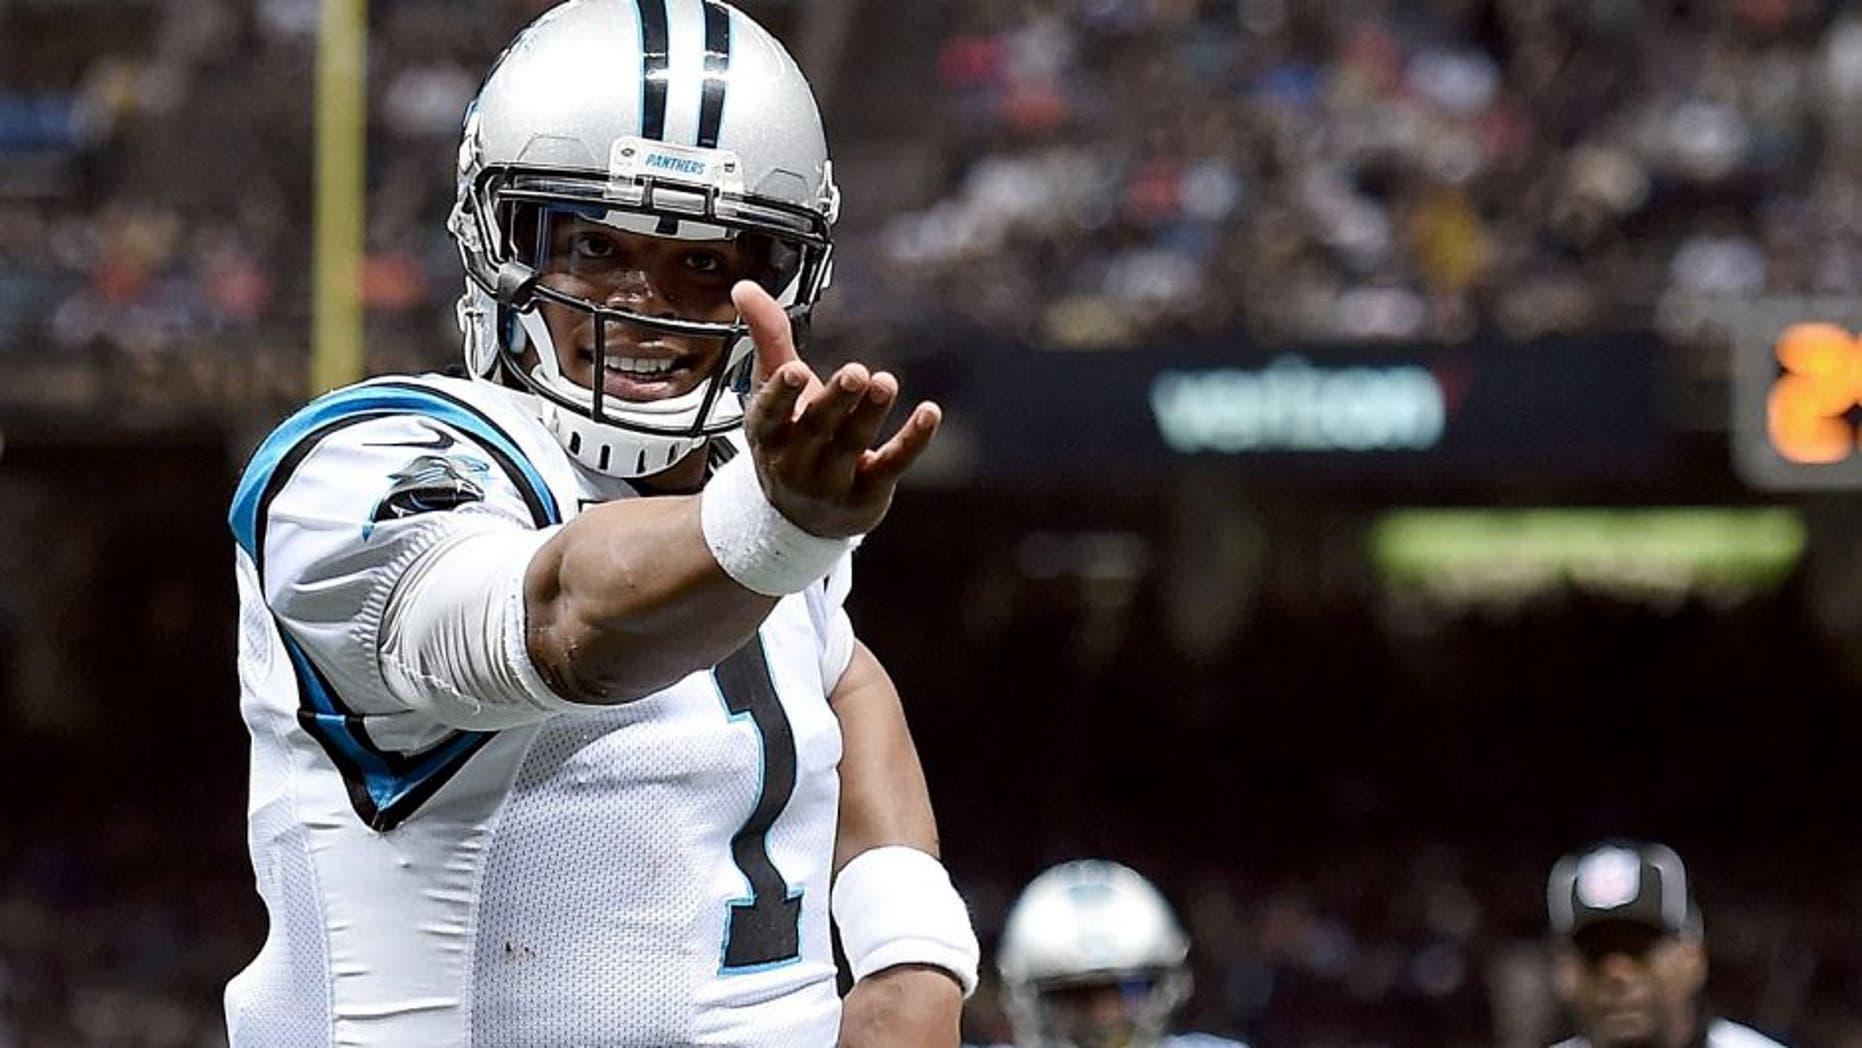 NEW ORLEANS, LA - DECEMBER 06: Cam Newton #1 of the Carolina Panthers celebrates a touchdown during the third quarter of a game against the New Orleans Saints at the Mercedes-Benz Superdome on December 6, 2015 in New Orleans, Louisiana. (Photo by Stacy Revere/Getty Images)